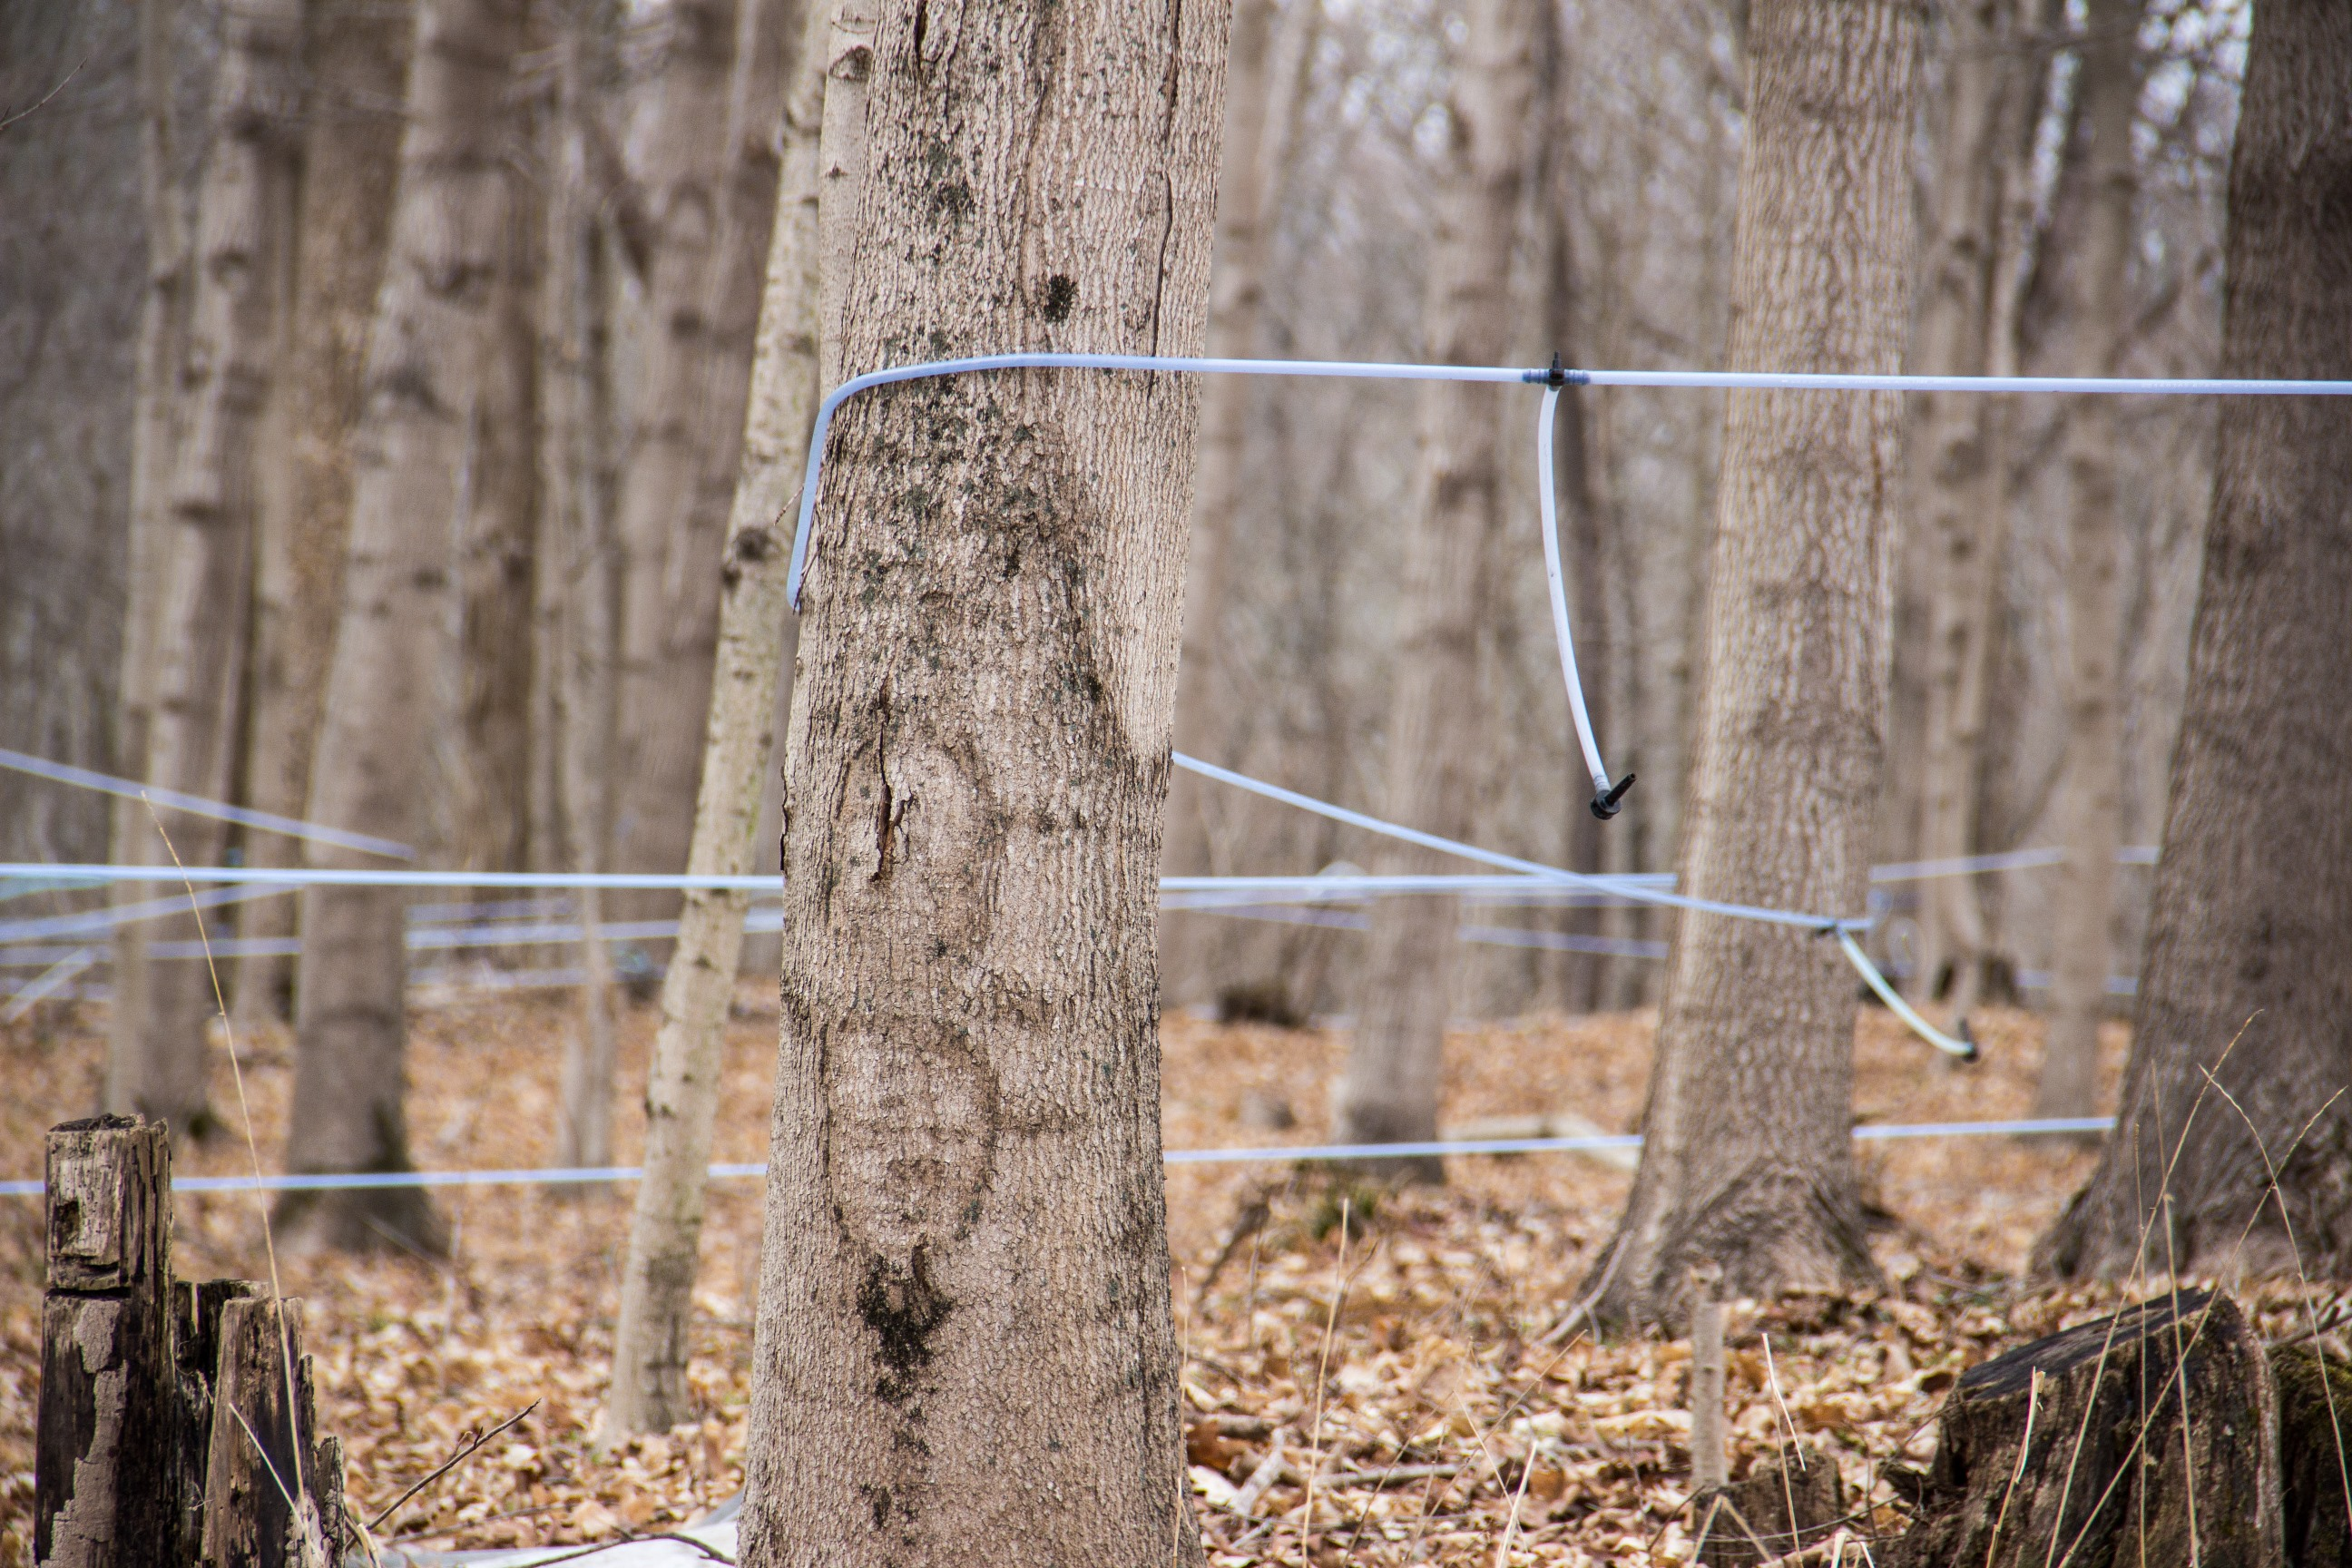 Plastic tubing used to collect maple sap